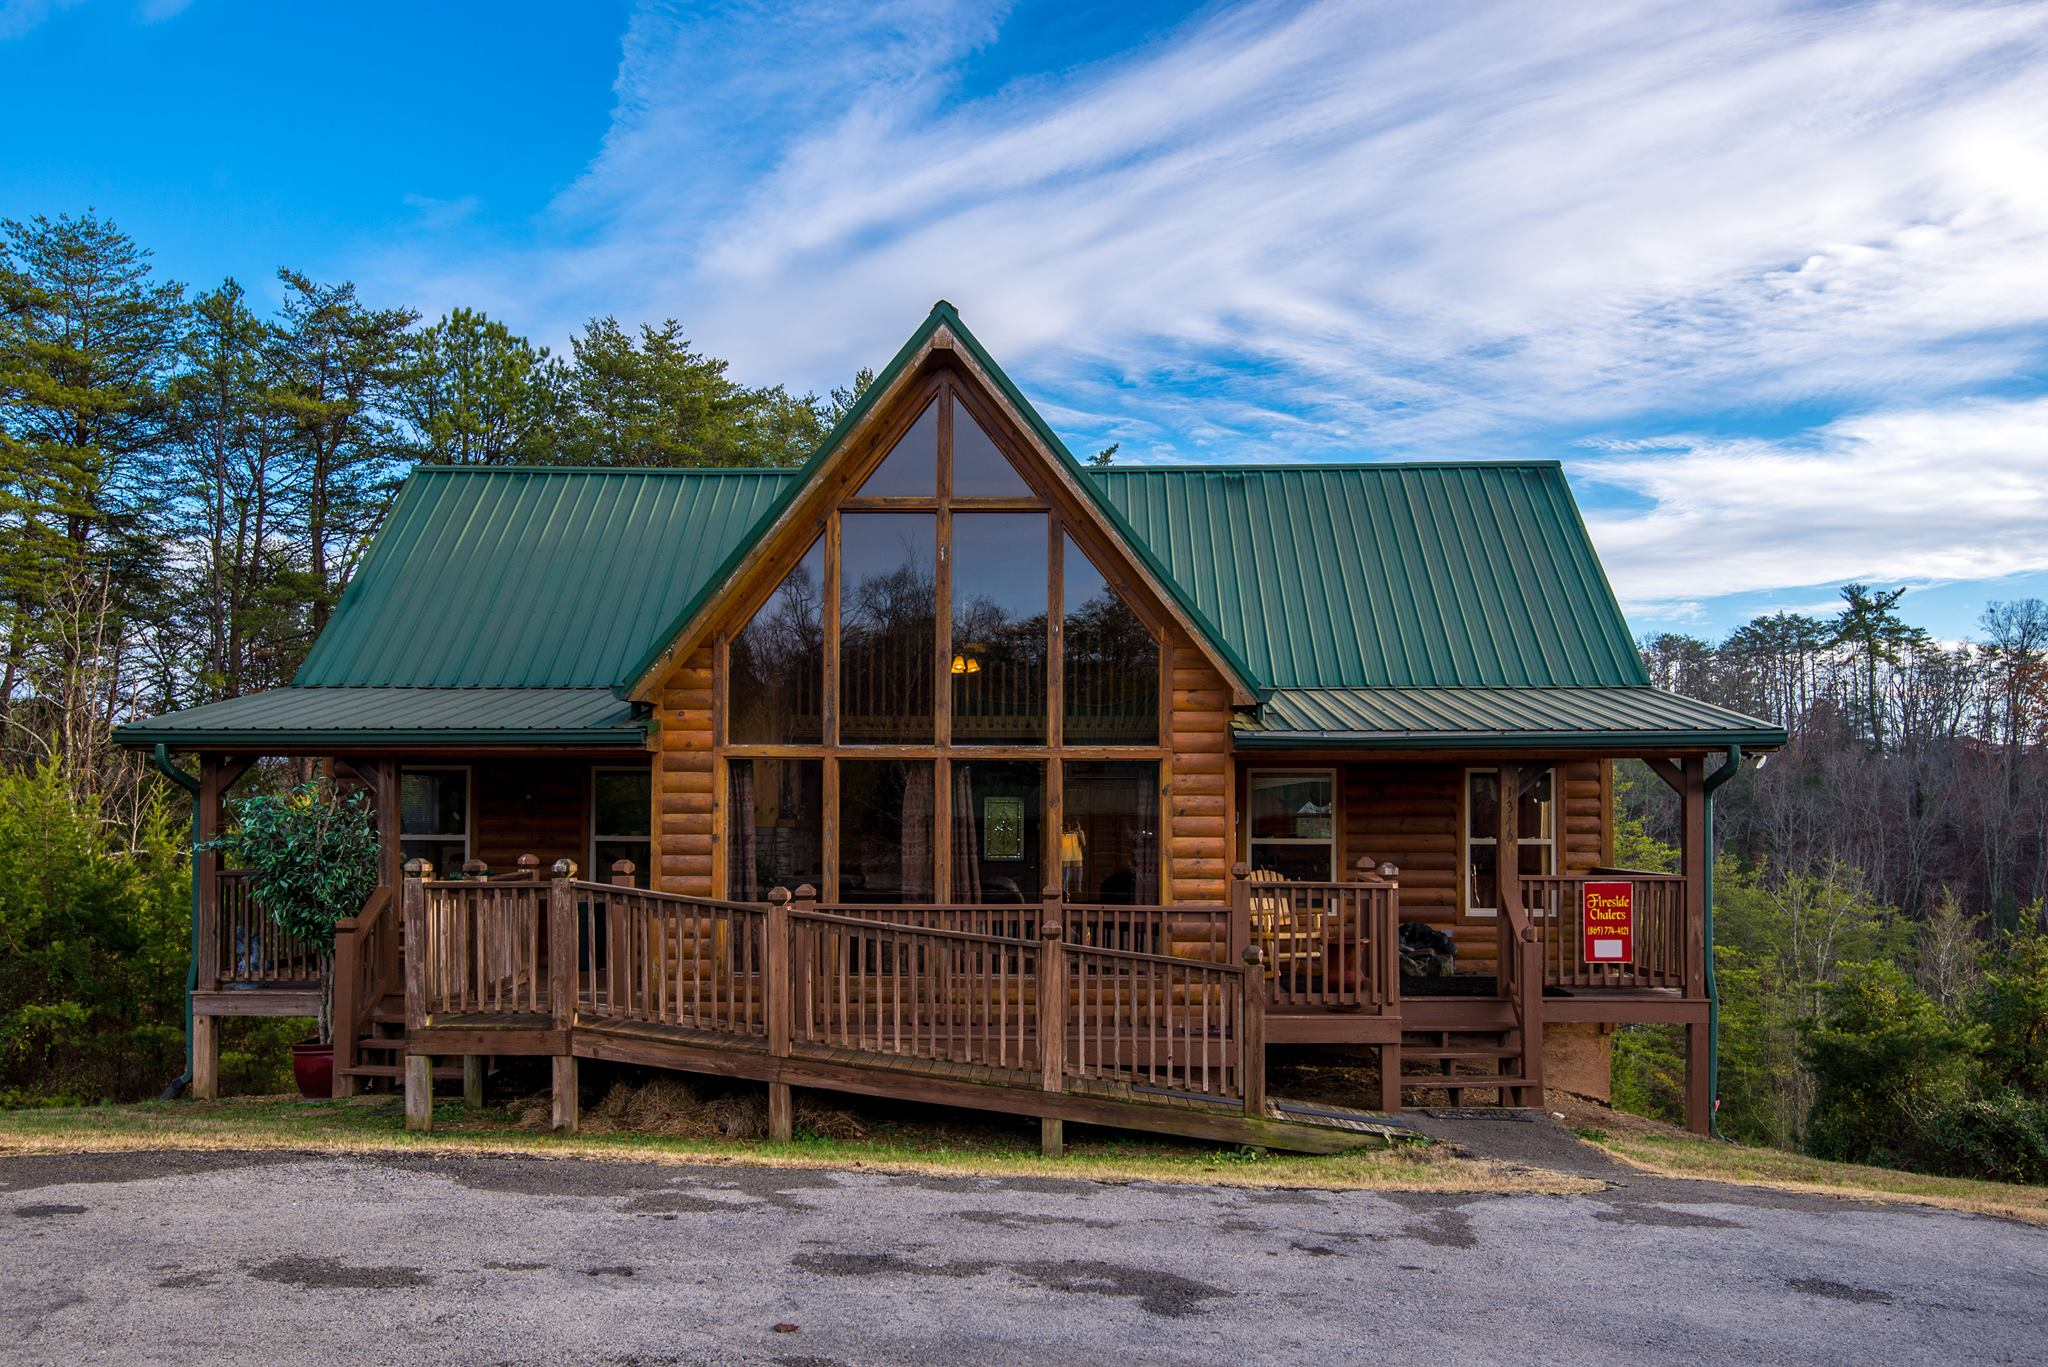 Pigeon Forge Four Bedroom Cabin Rental with access to an arcade gaming system